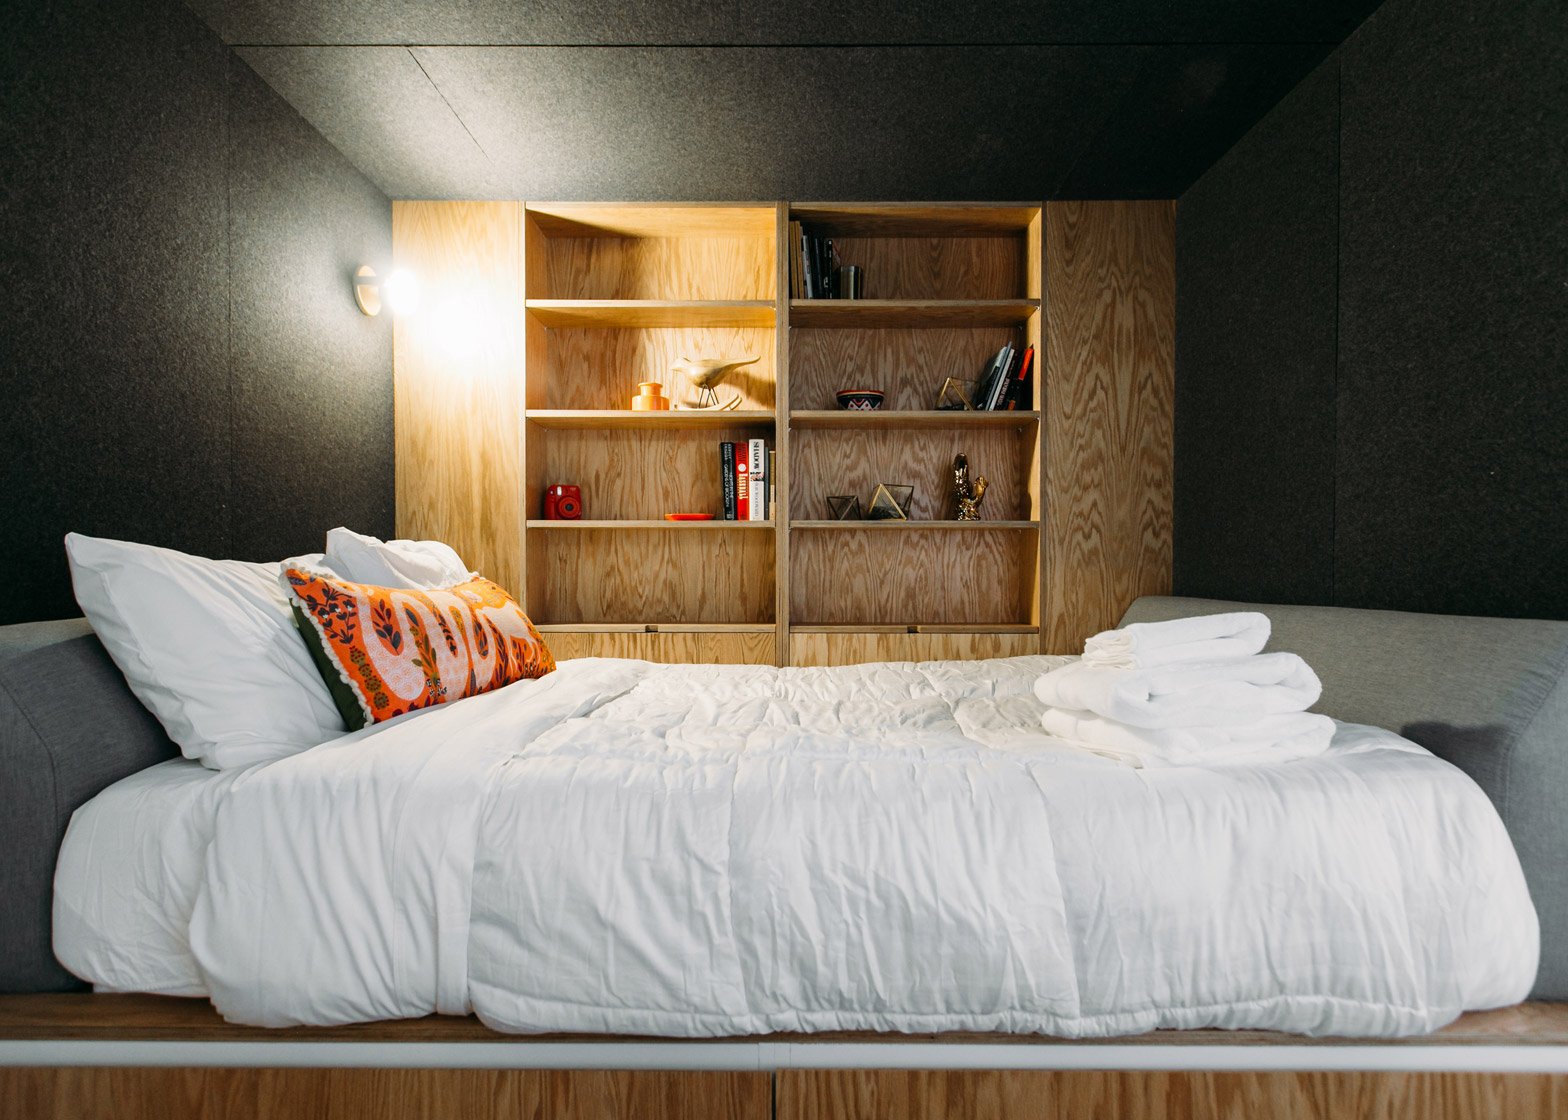 New York City Bedroom Furniture Wework Unveils Its First Co Living Apartments In New York